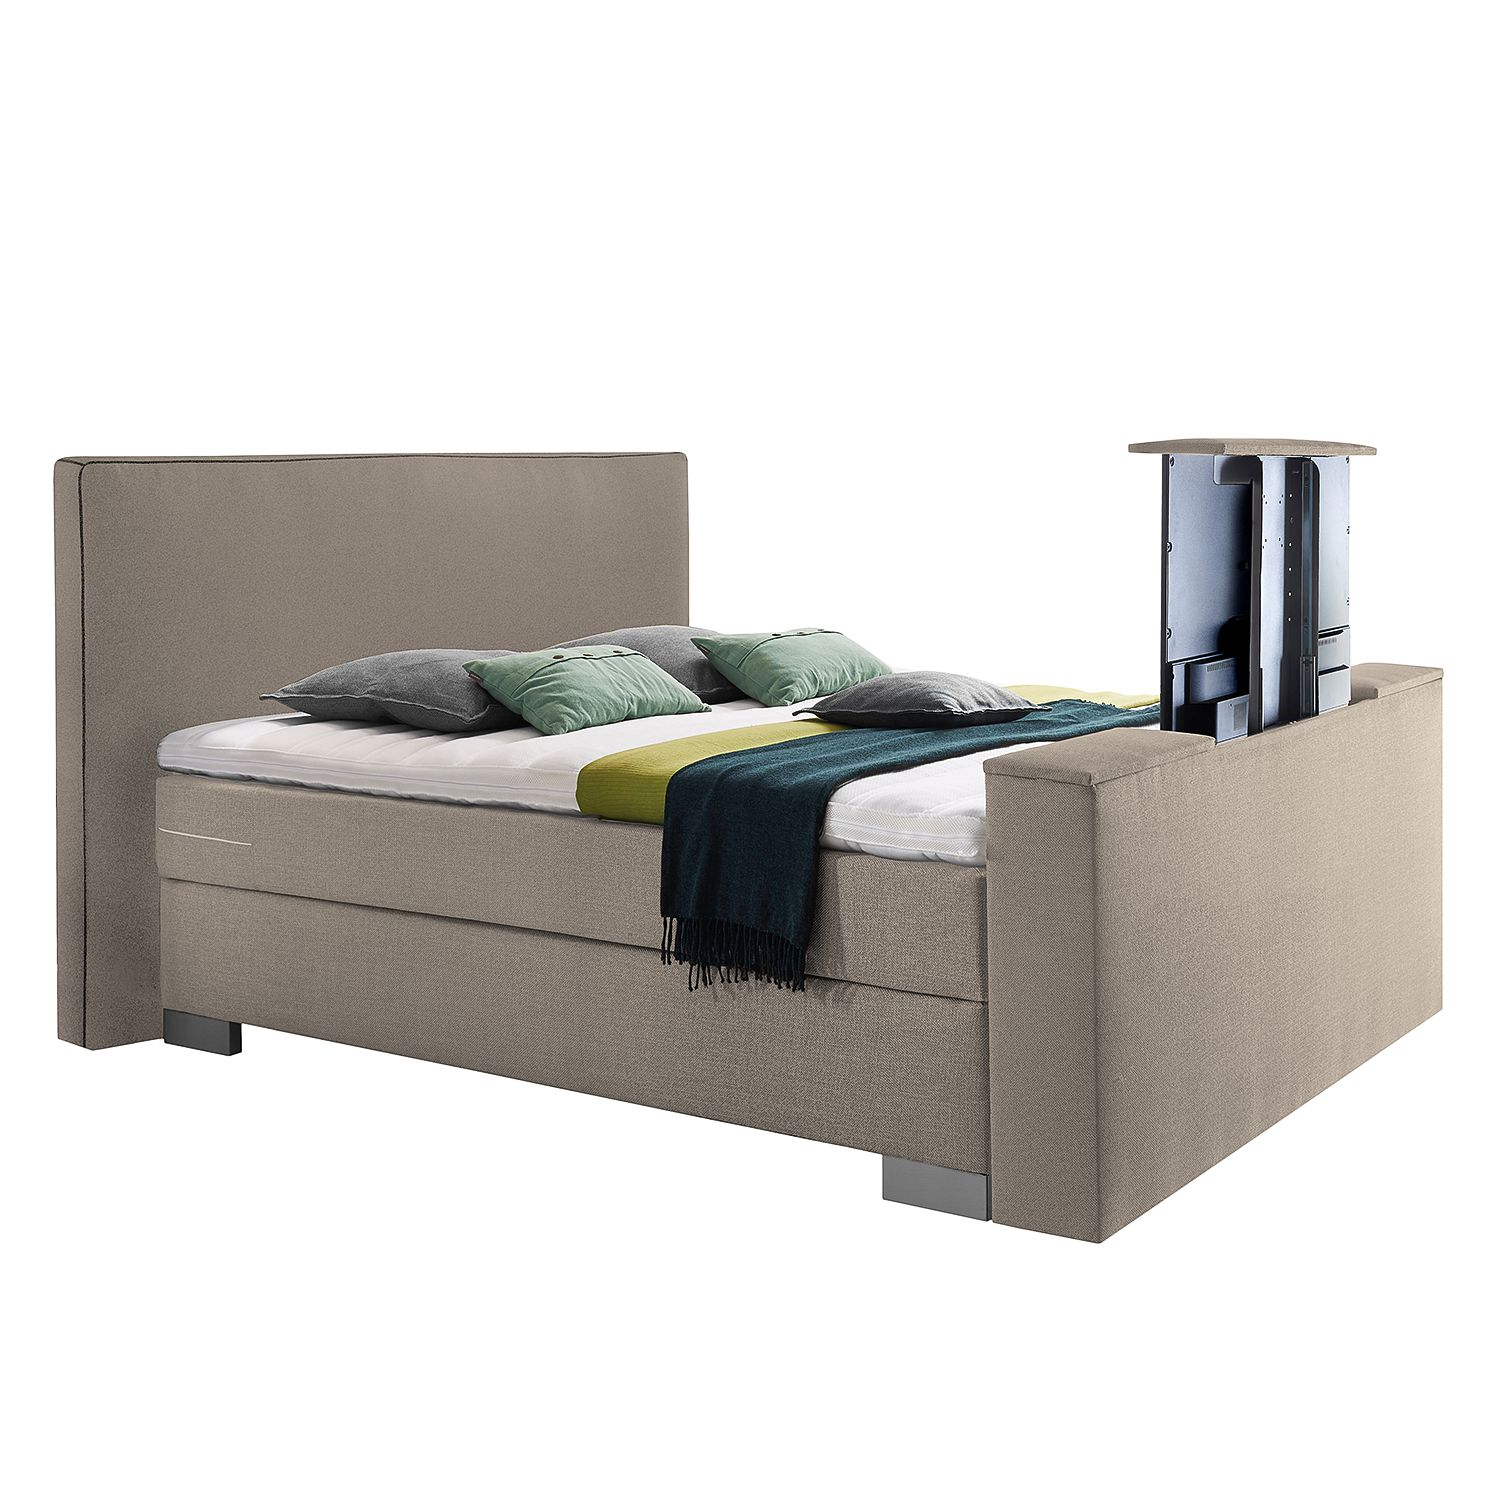 goedkoop Boxspring Emperial Night III 160 x 200cm H2 tot 80kg Bonellvering Gemêleerd beige Grand Selection